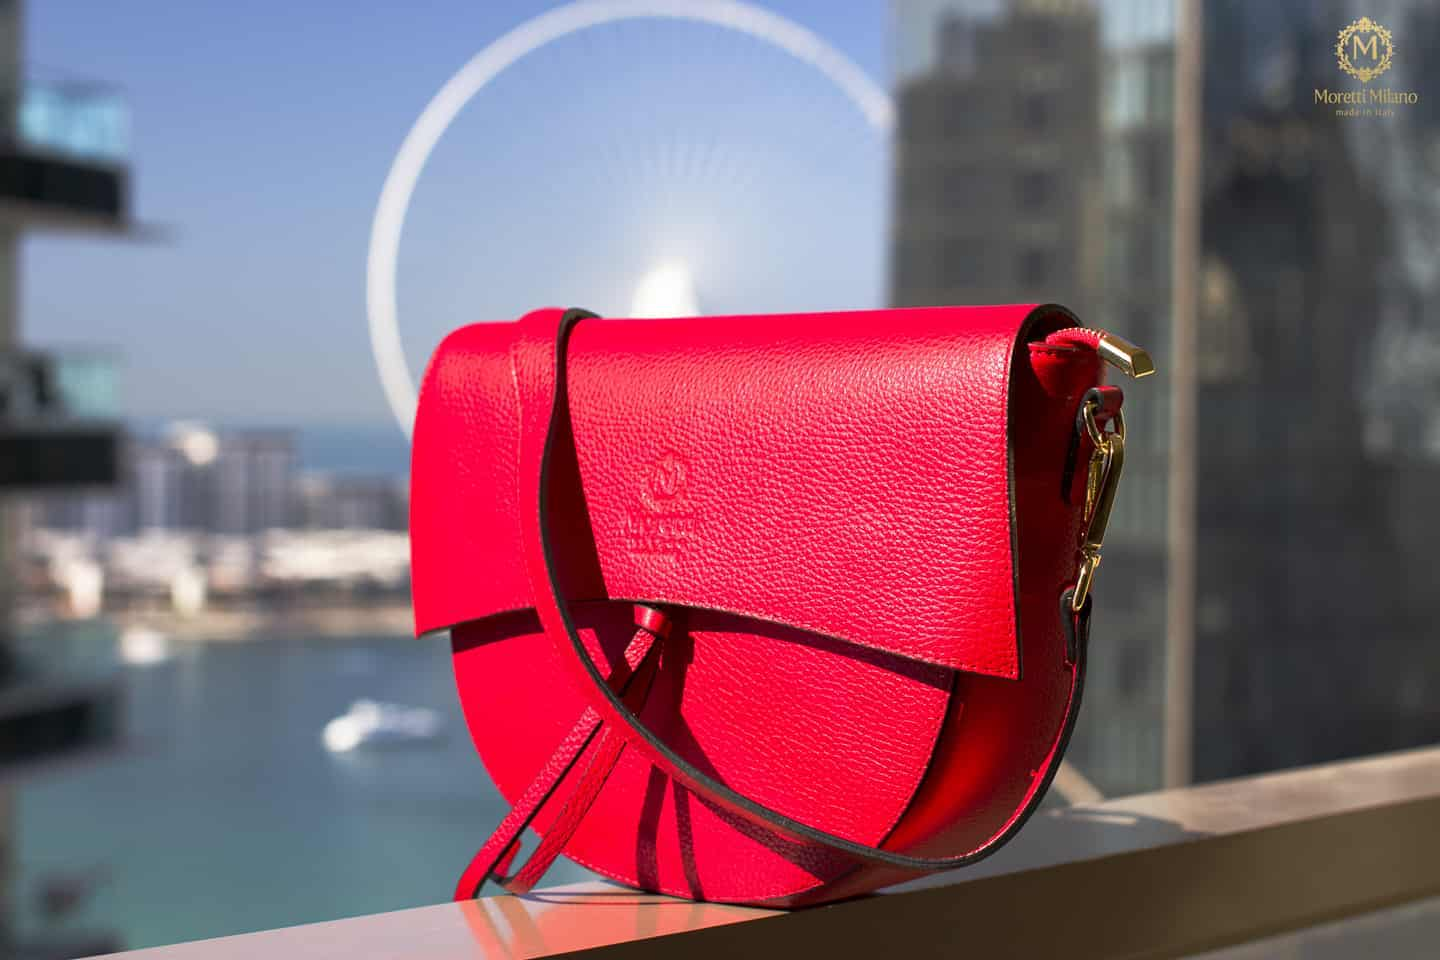 Adria handbag in luxury leather by Moretti Milano Italy 14459 red